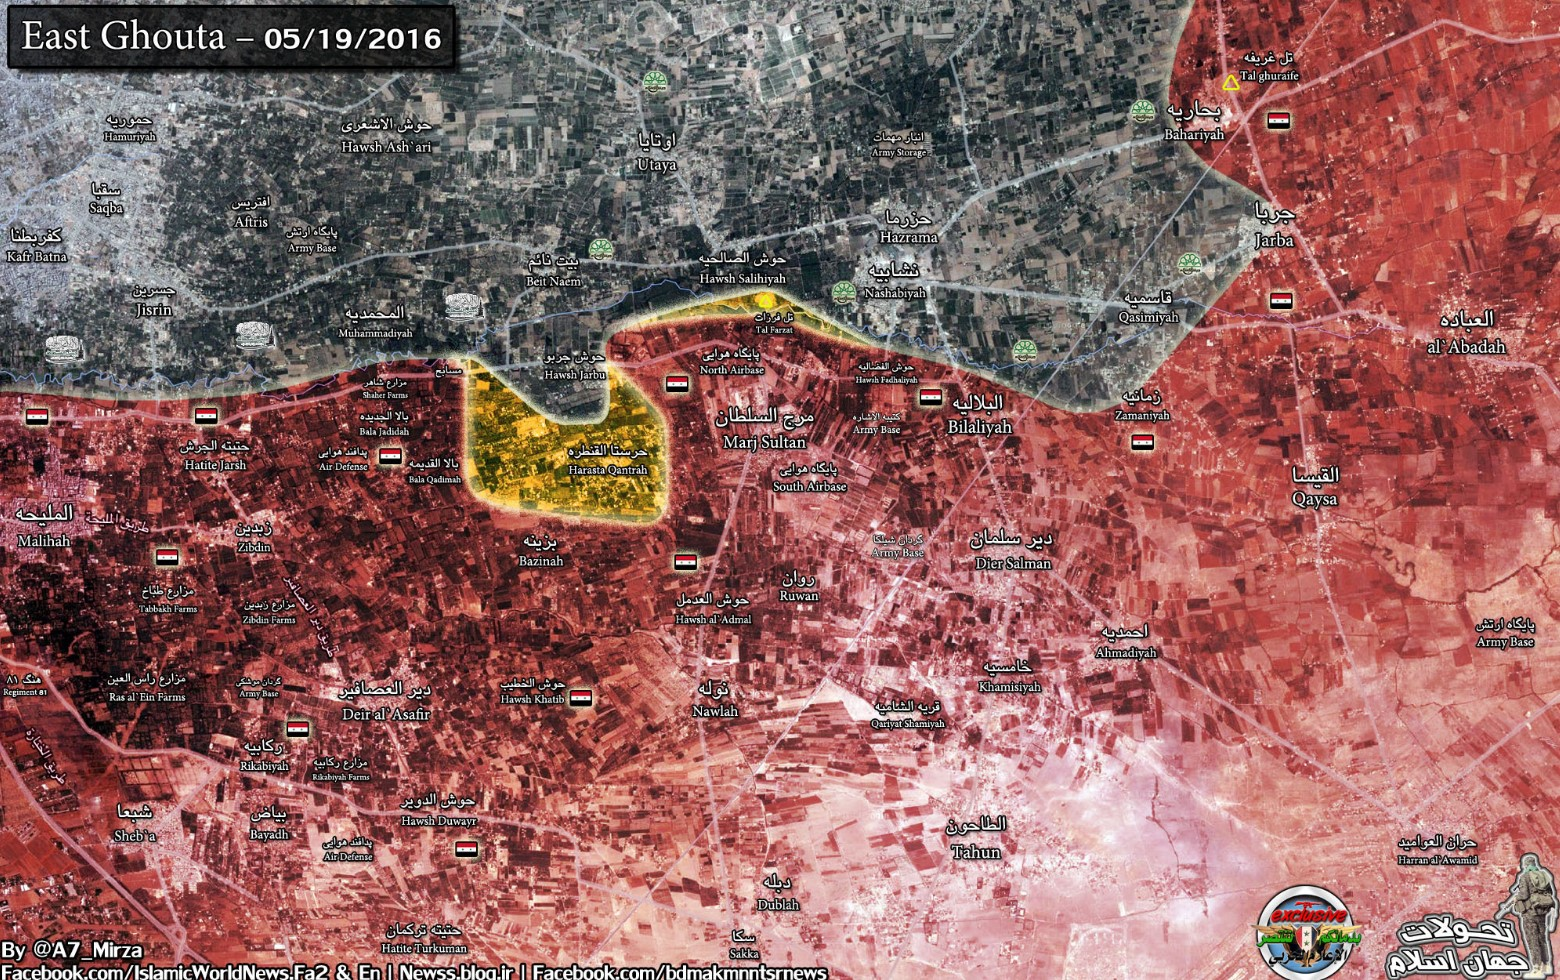 Syrian Army unearths large network of tunnels in the East Ghouta